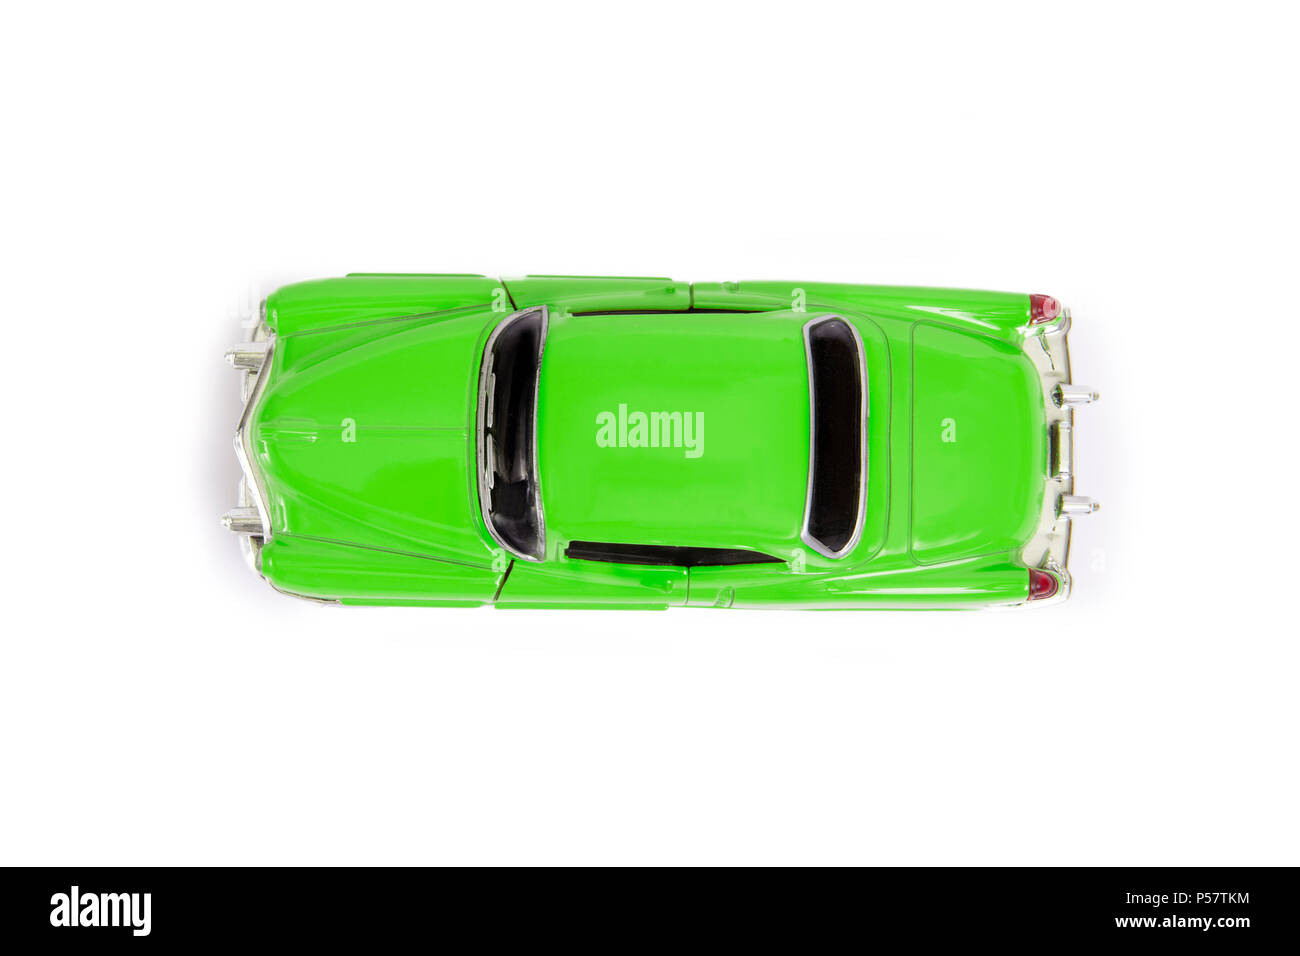 Top view of green model toy car in retro style on white background. - Stock Image